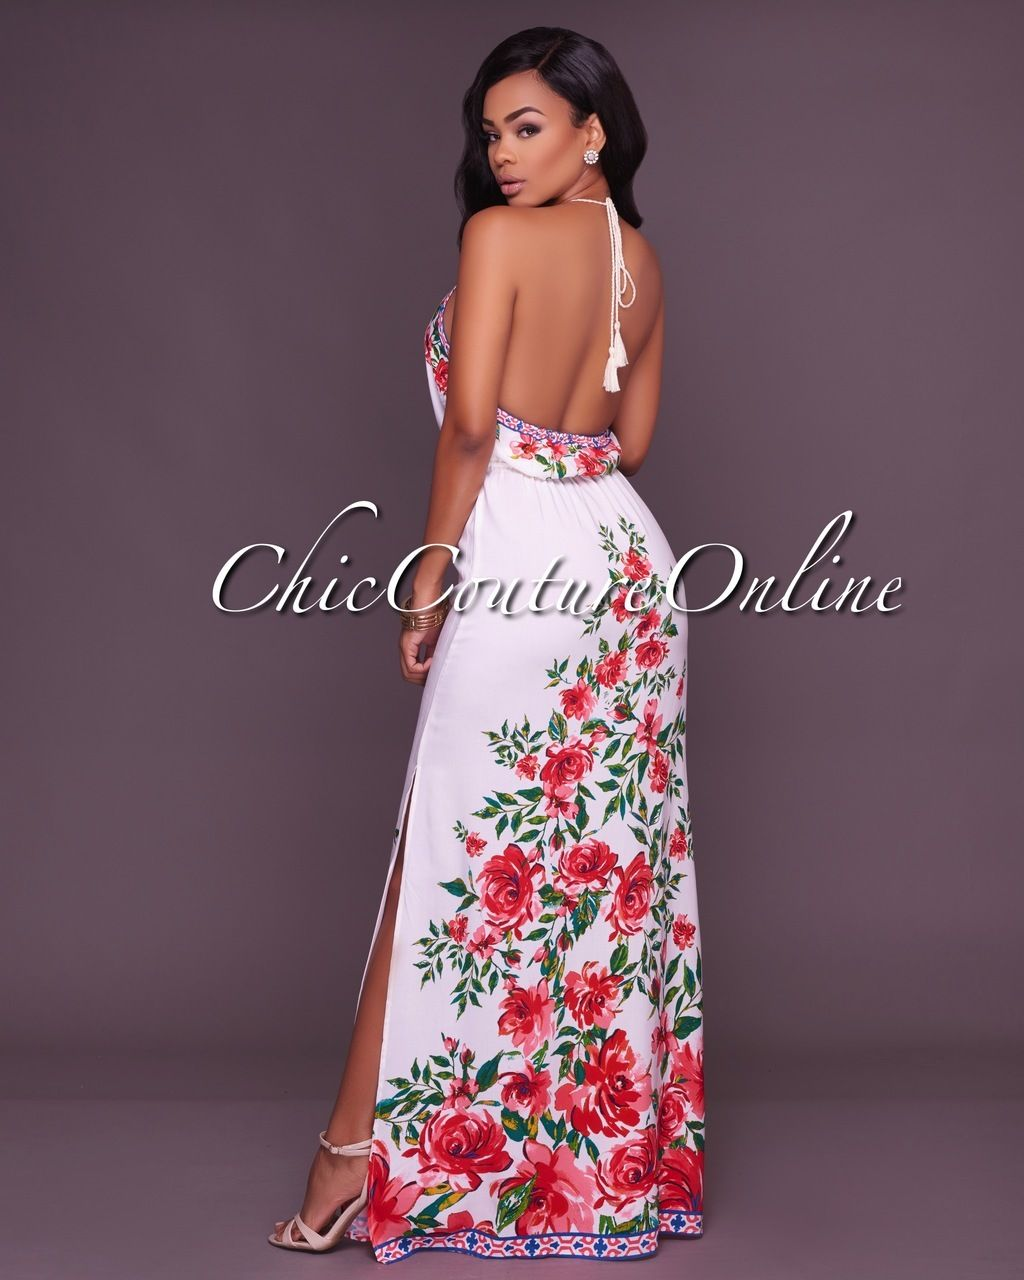 b8b8583f783 Chic Couture Online - Nancy Ivory Multi-Color Floral Print Maxi Dress